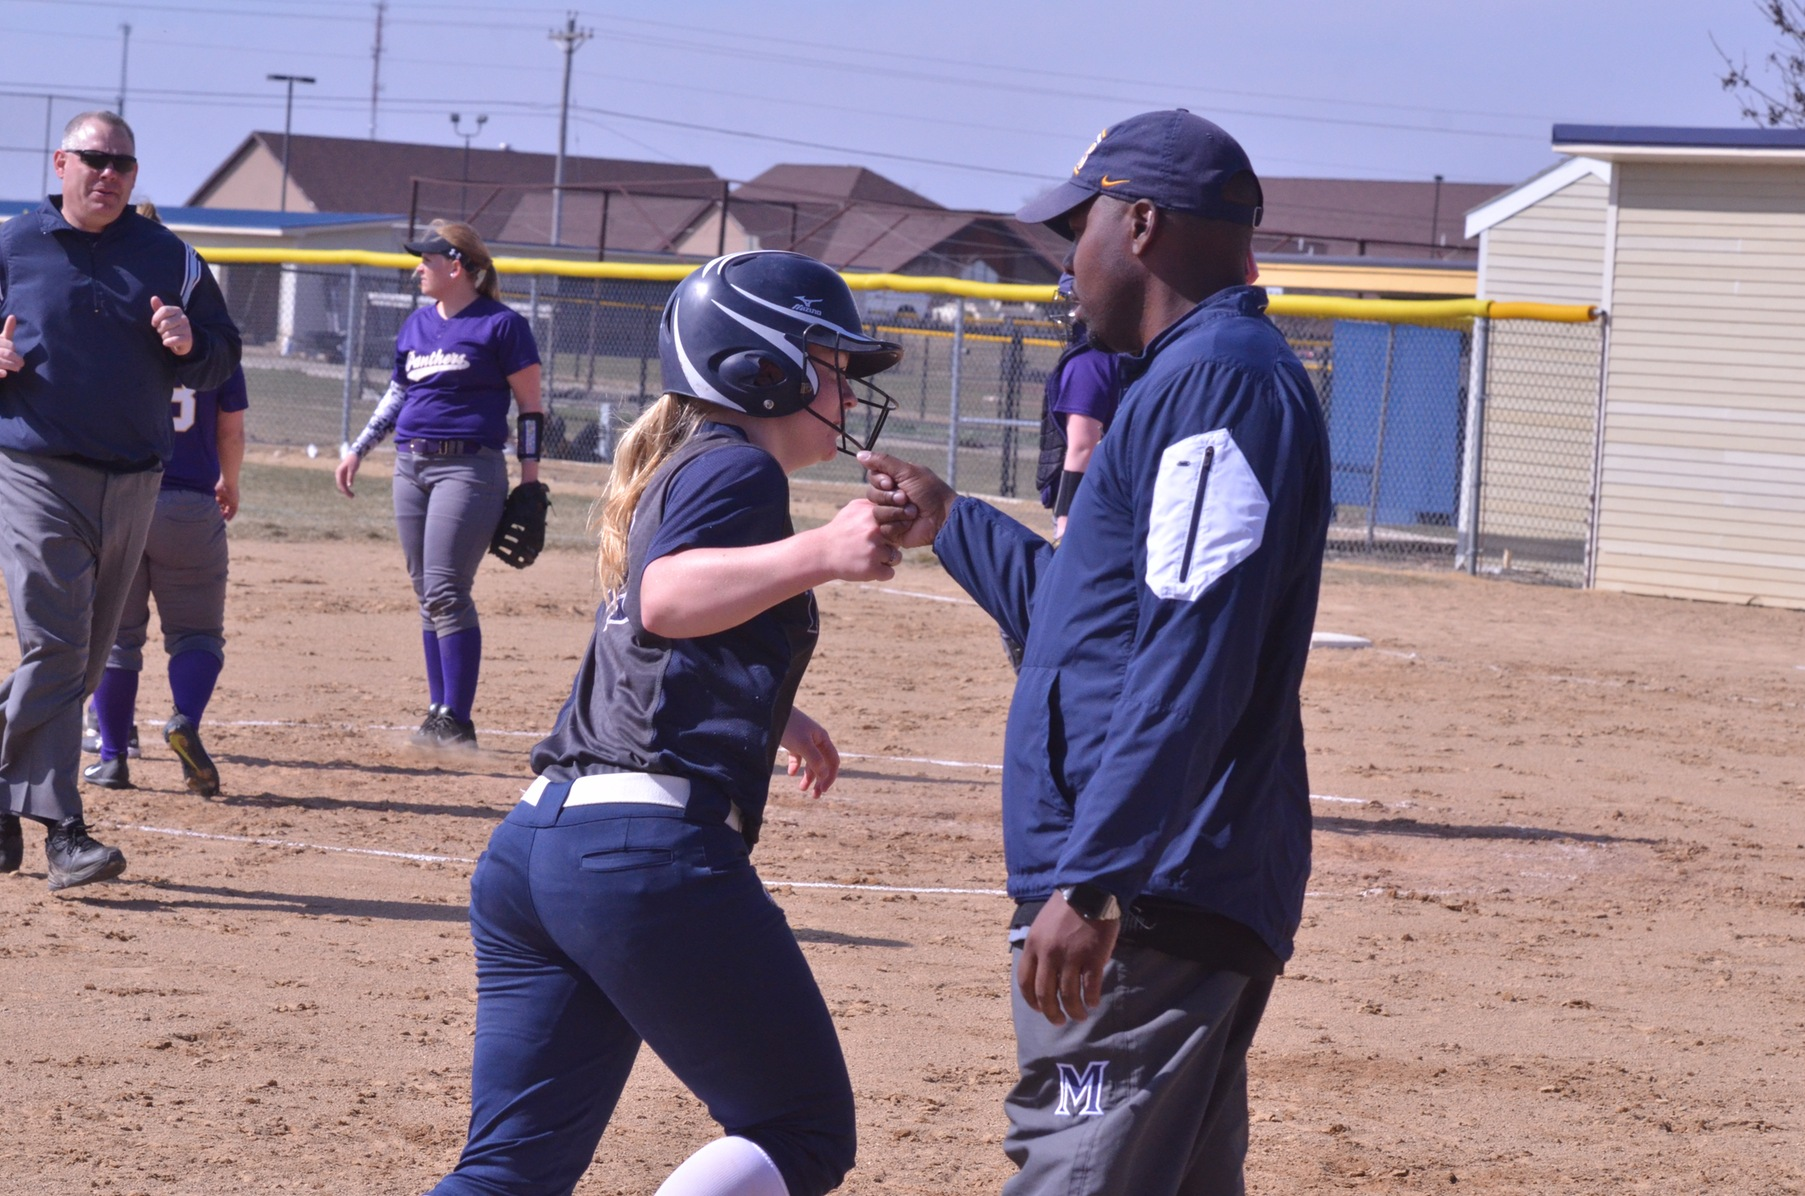 Shaena Robinson blasted her conference-leading ninth home run in game one Monday afternoon